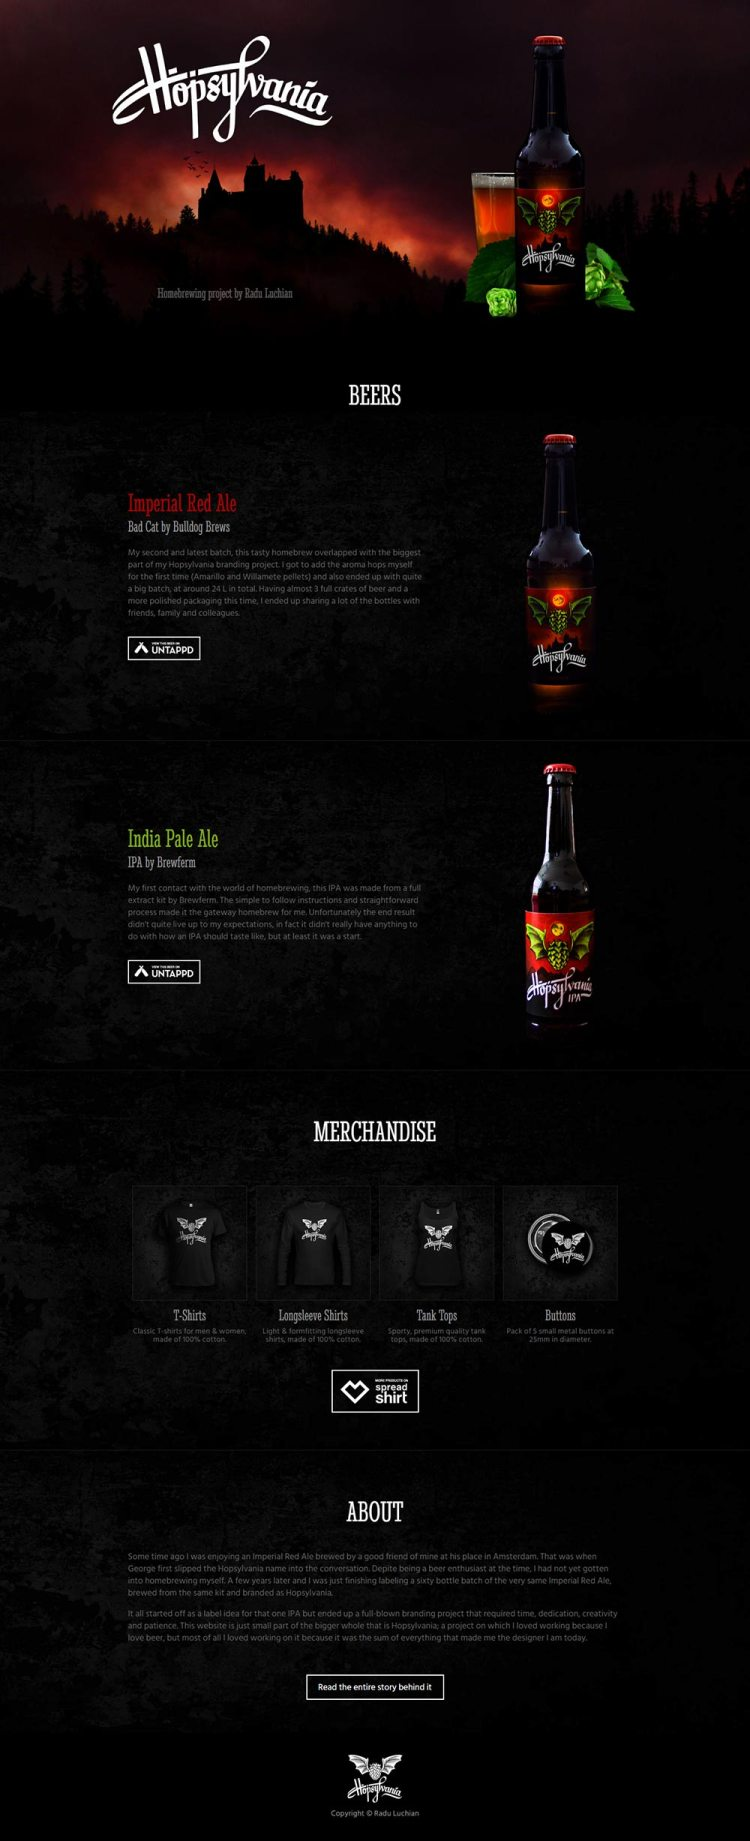 A single page layout that focuses on the brand